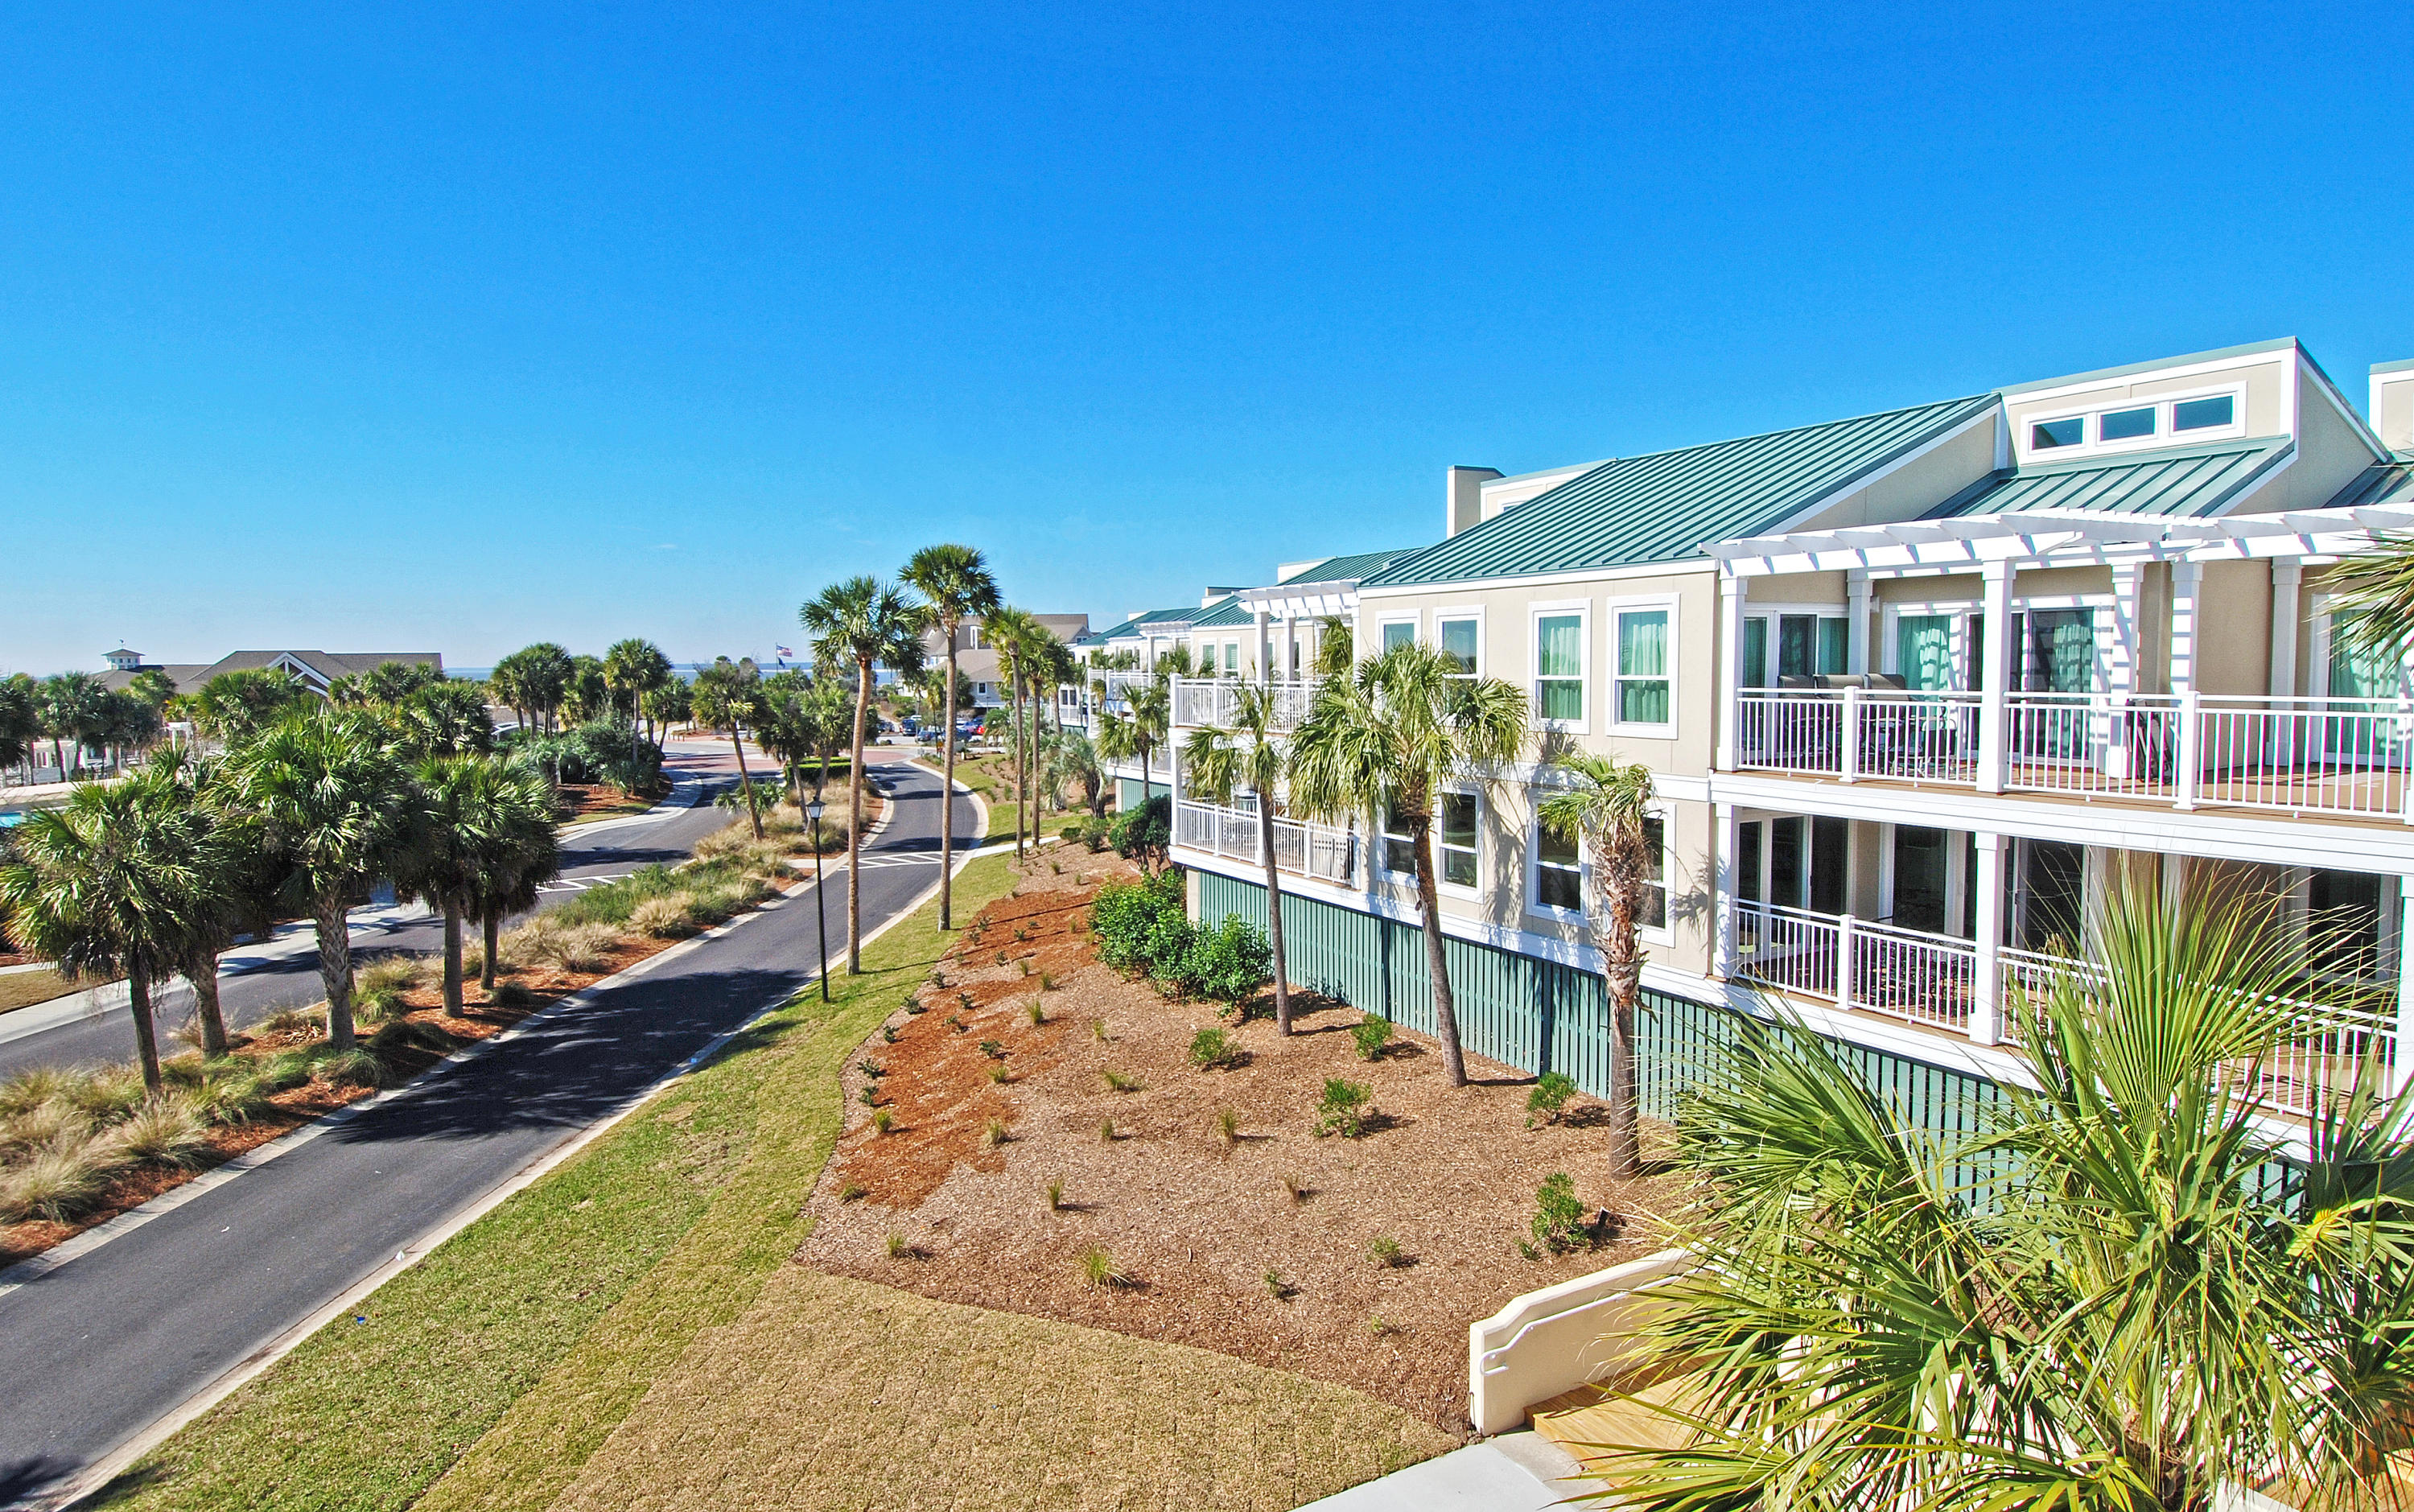 Atrium Villas Homes For Sale - 2943 Atrium Villa, Seabrook Island, SC - 26